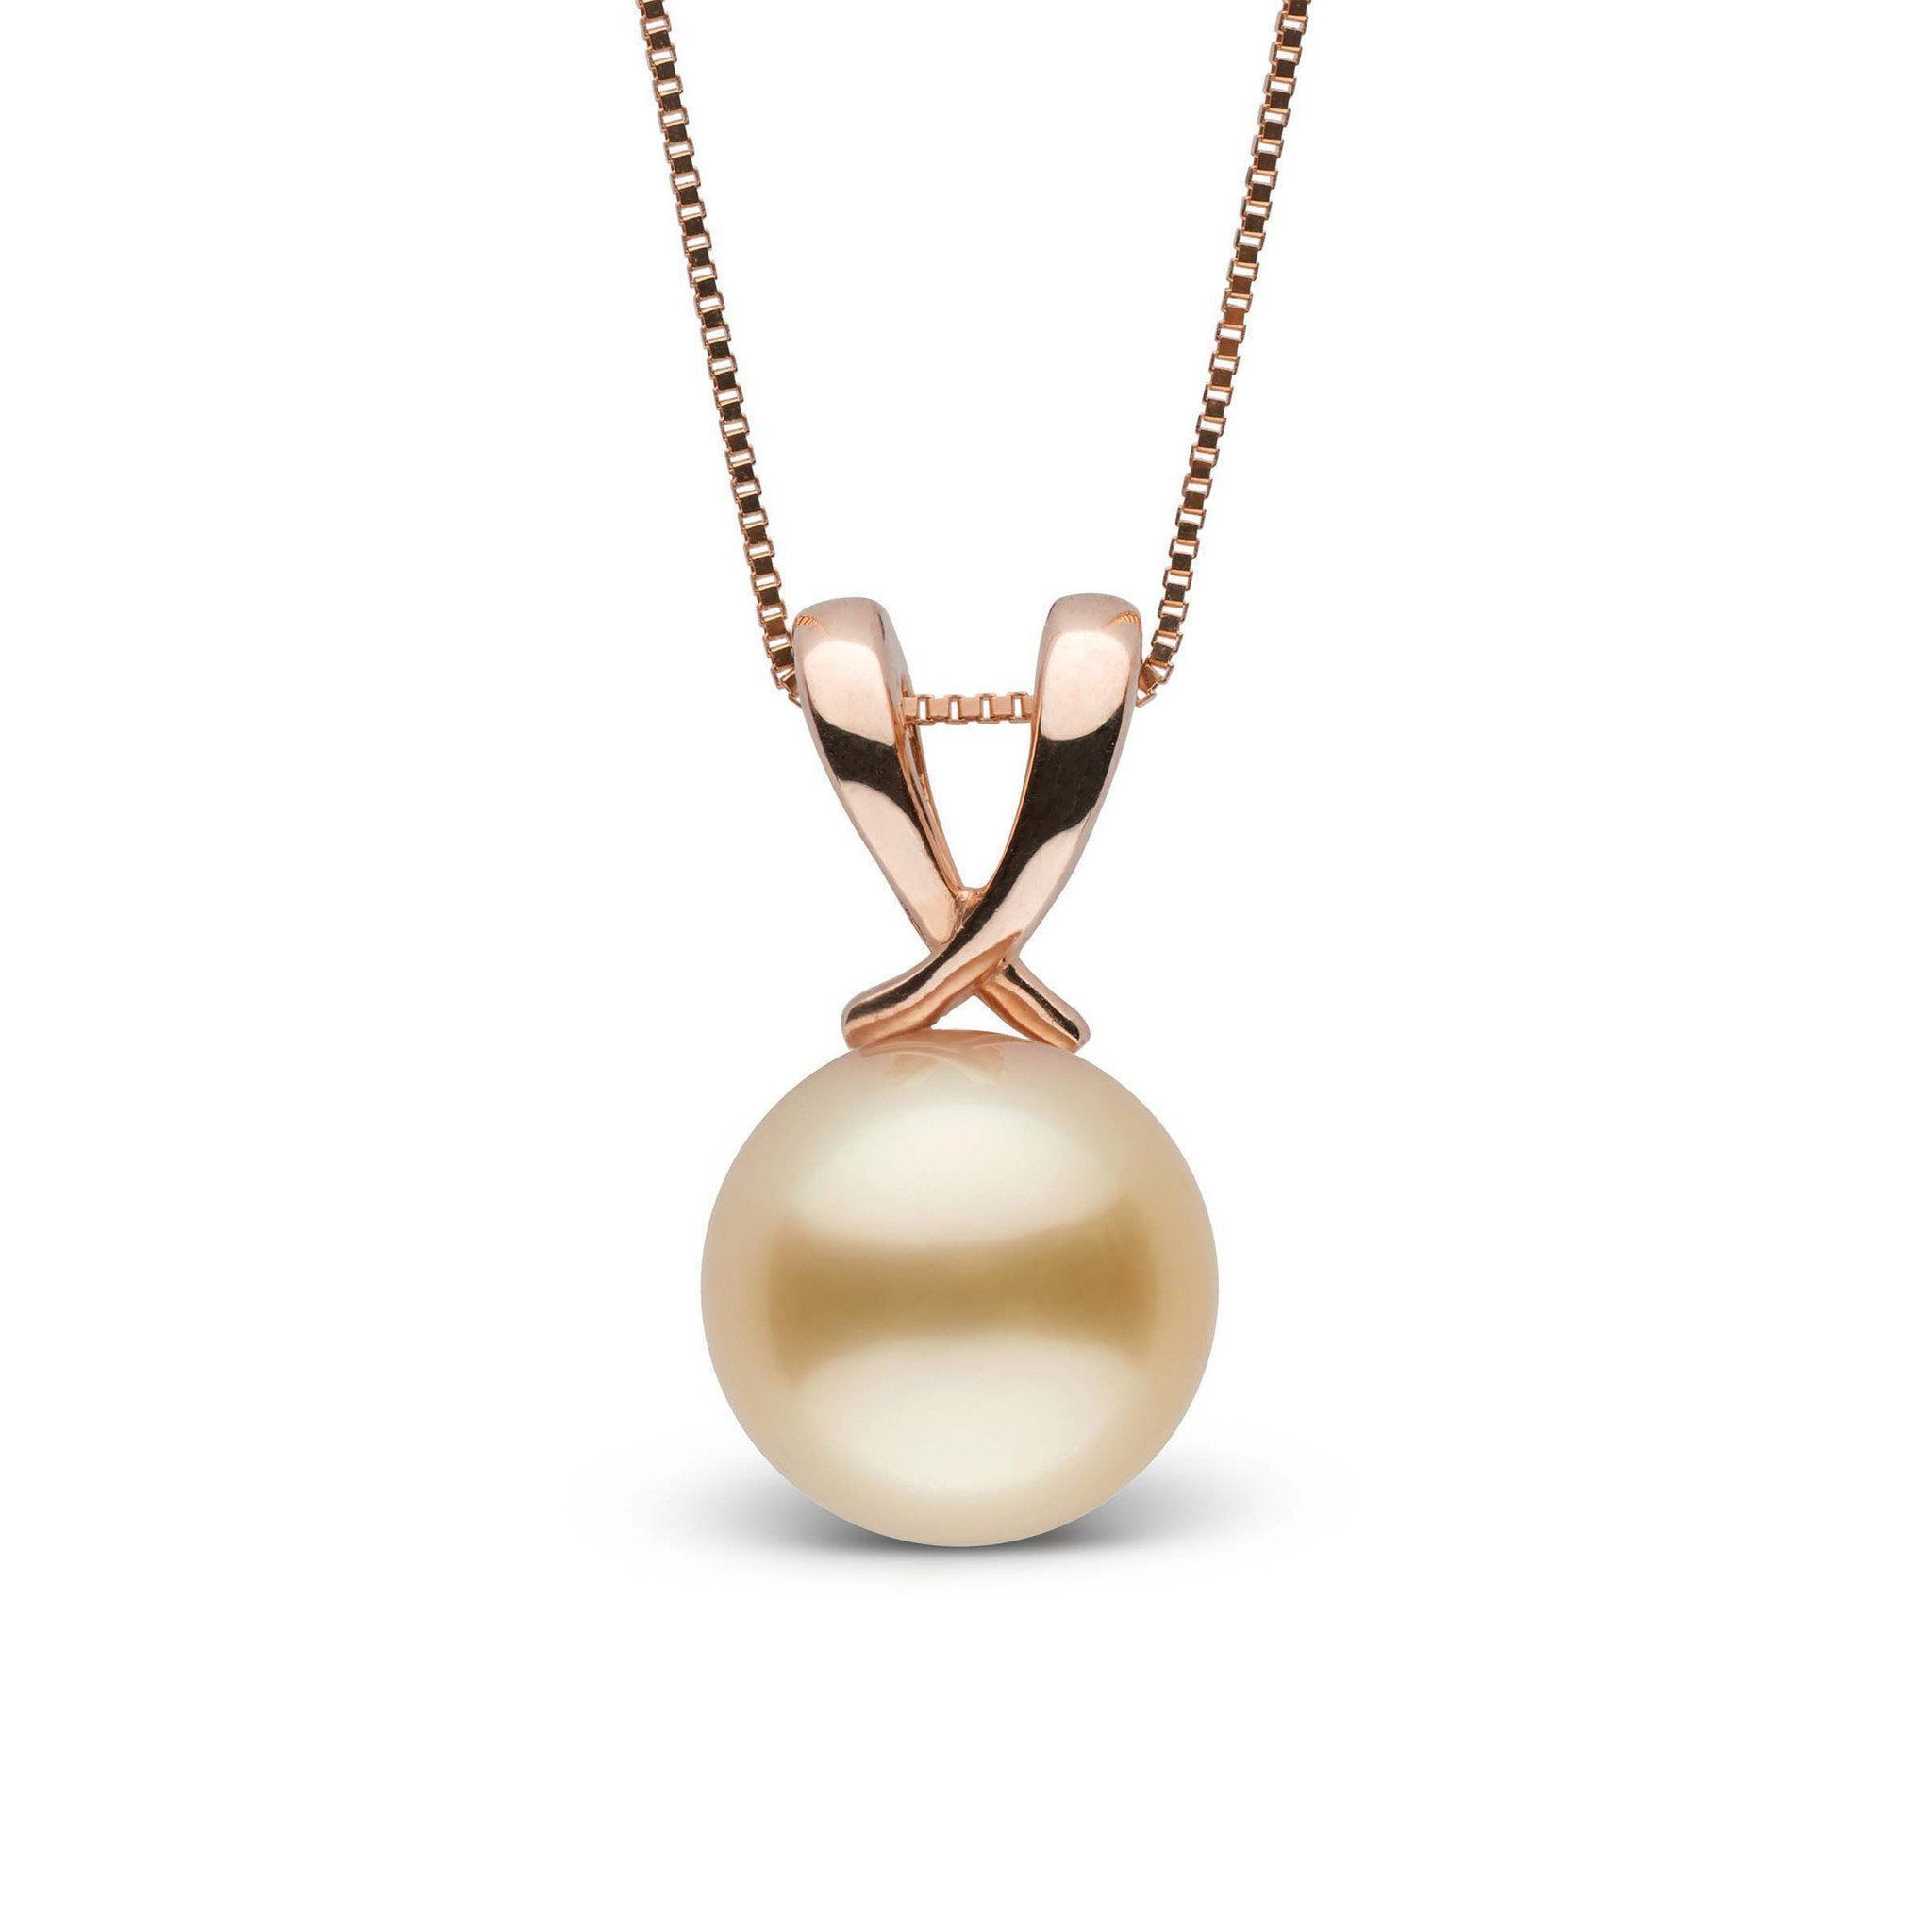 Ribbon Collection Golden 9.0-10.0 mm South Sea Pearl Pendant